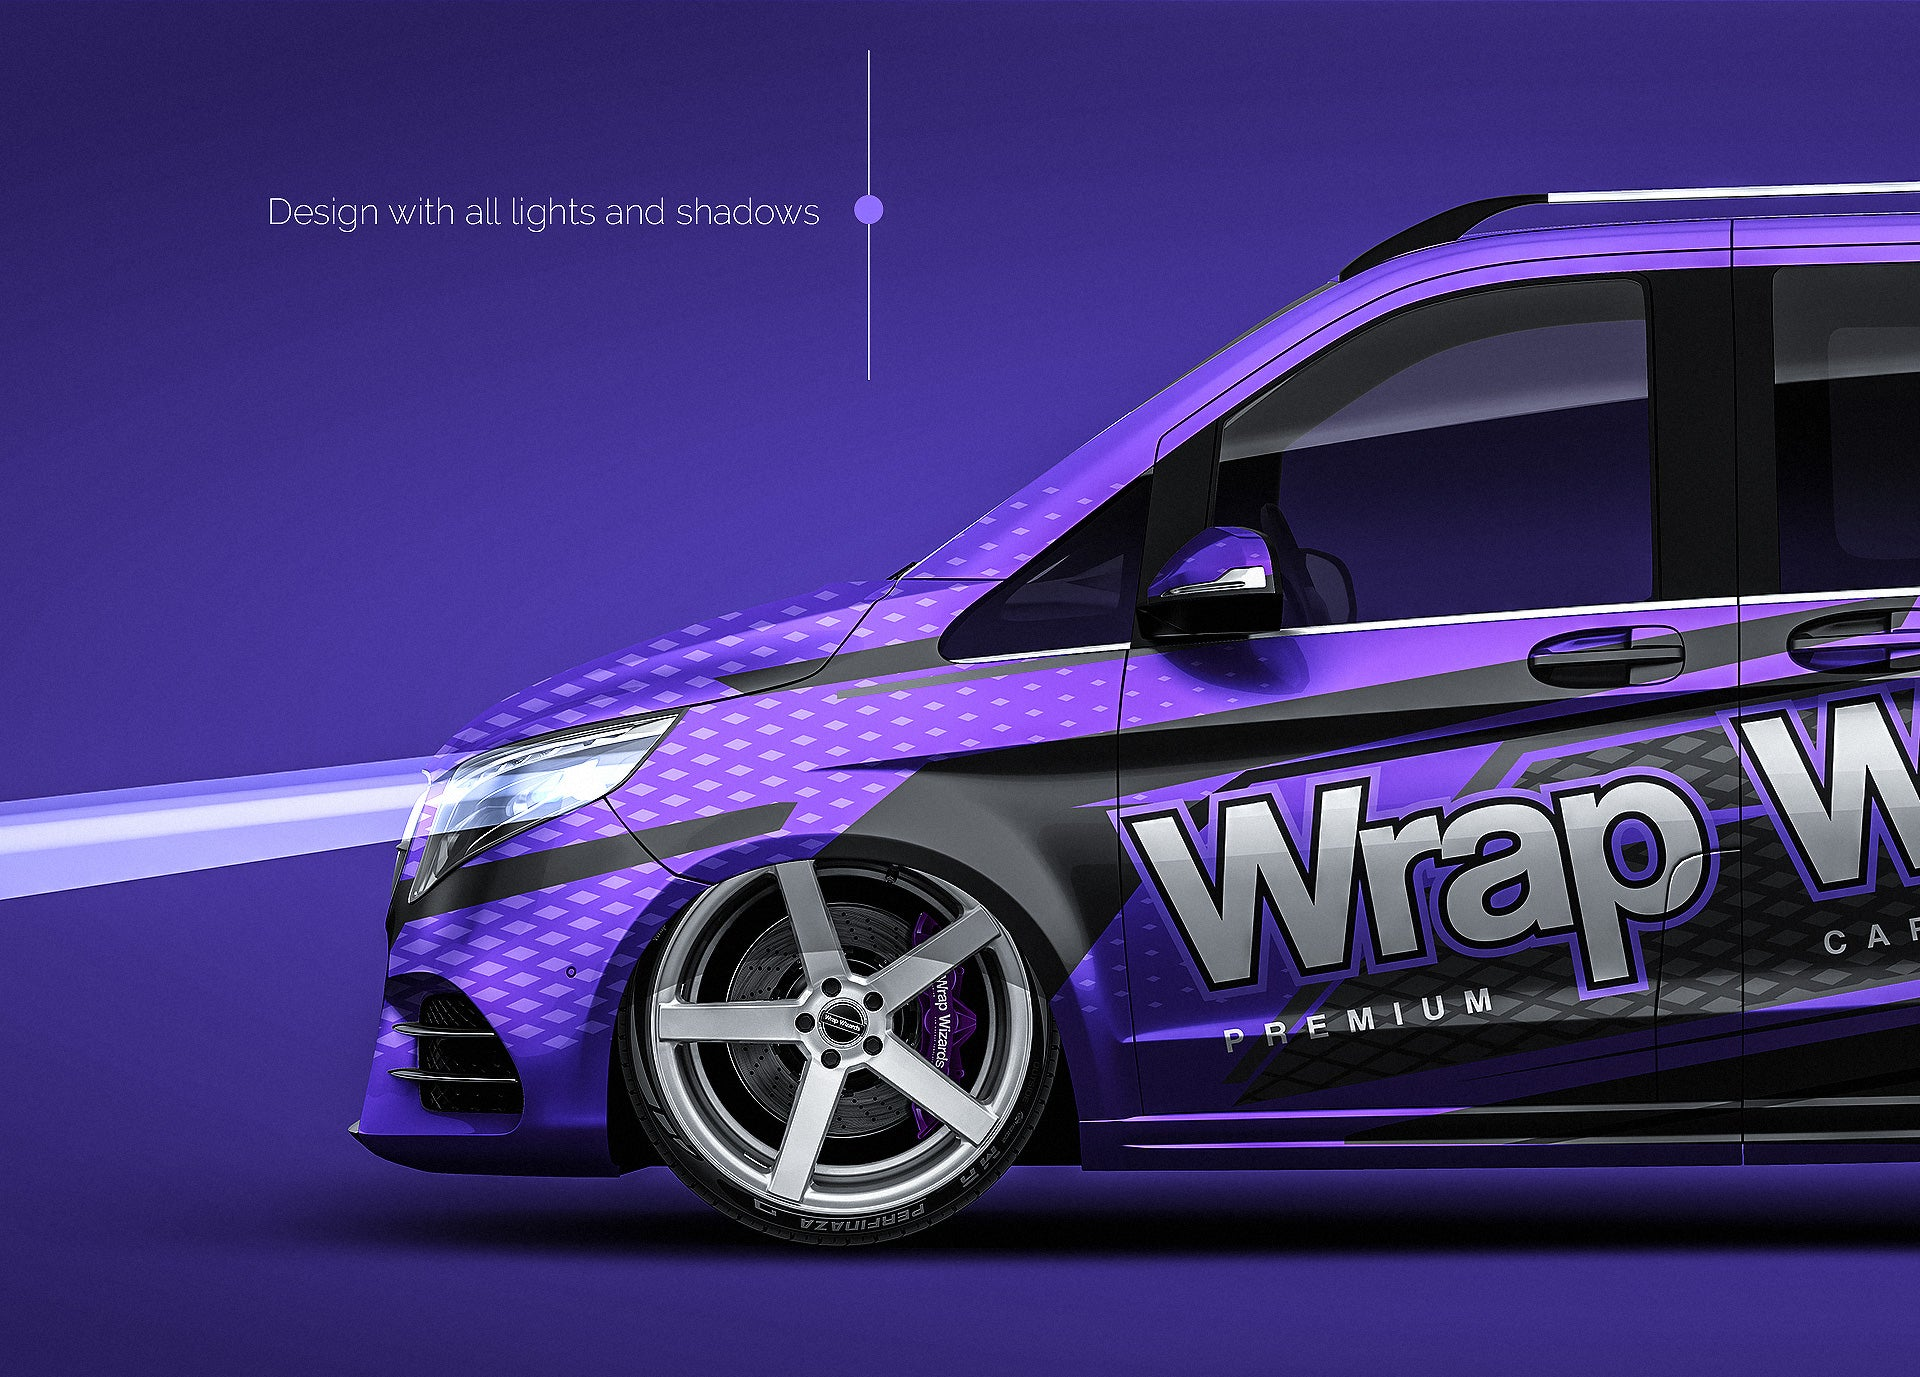 Mercedes Benz V-Class AMG 2020 all sides Car Mockup Template.psd